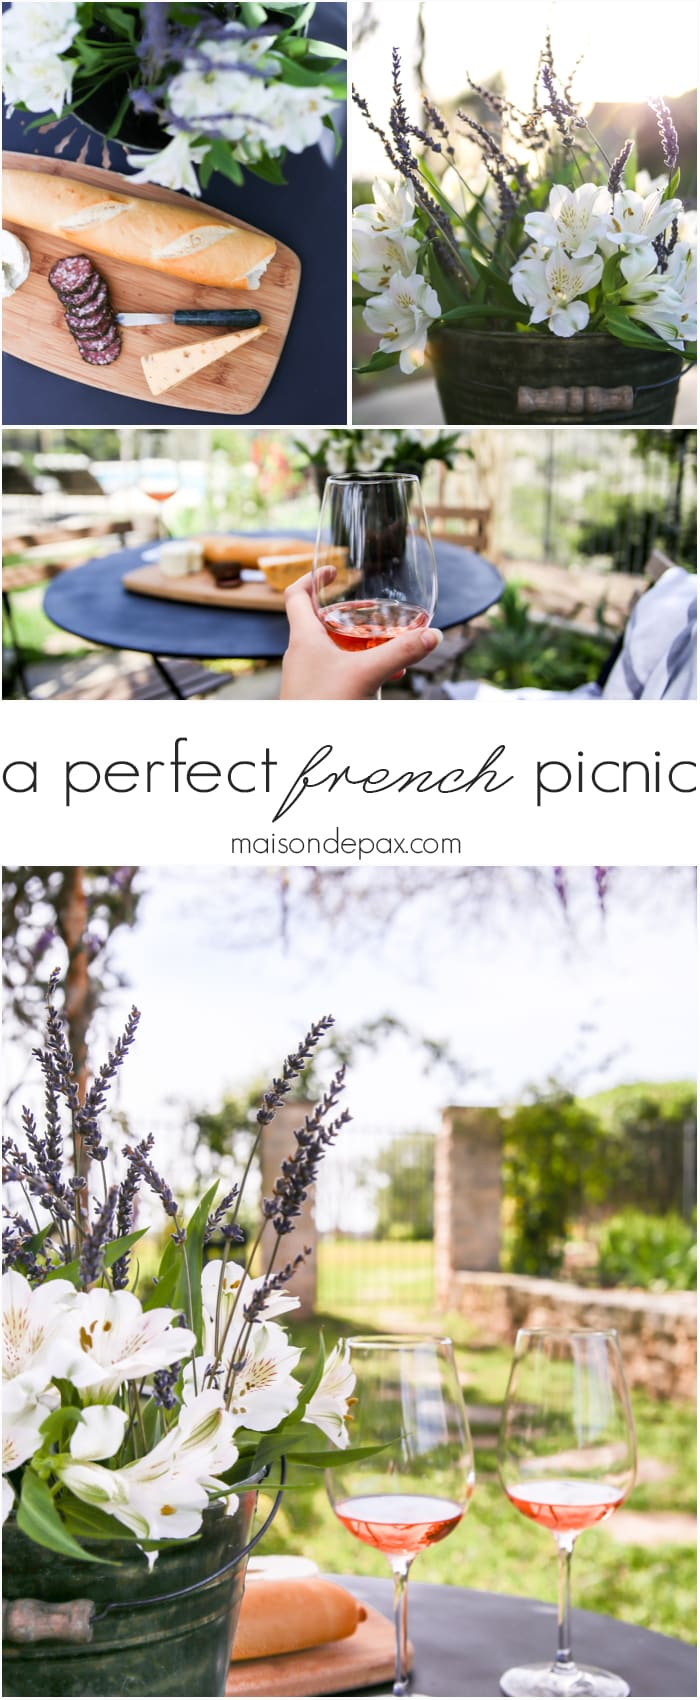 Simple rustic elegance! A perfect French picnic | maisondepax.com